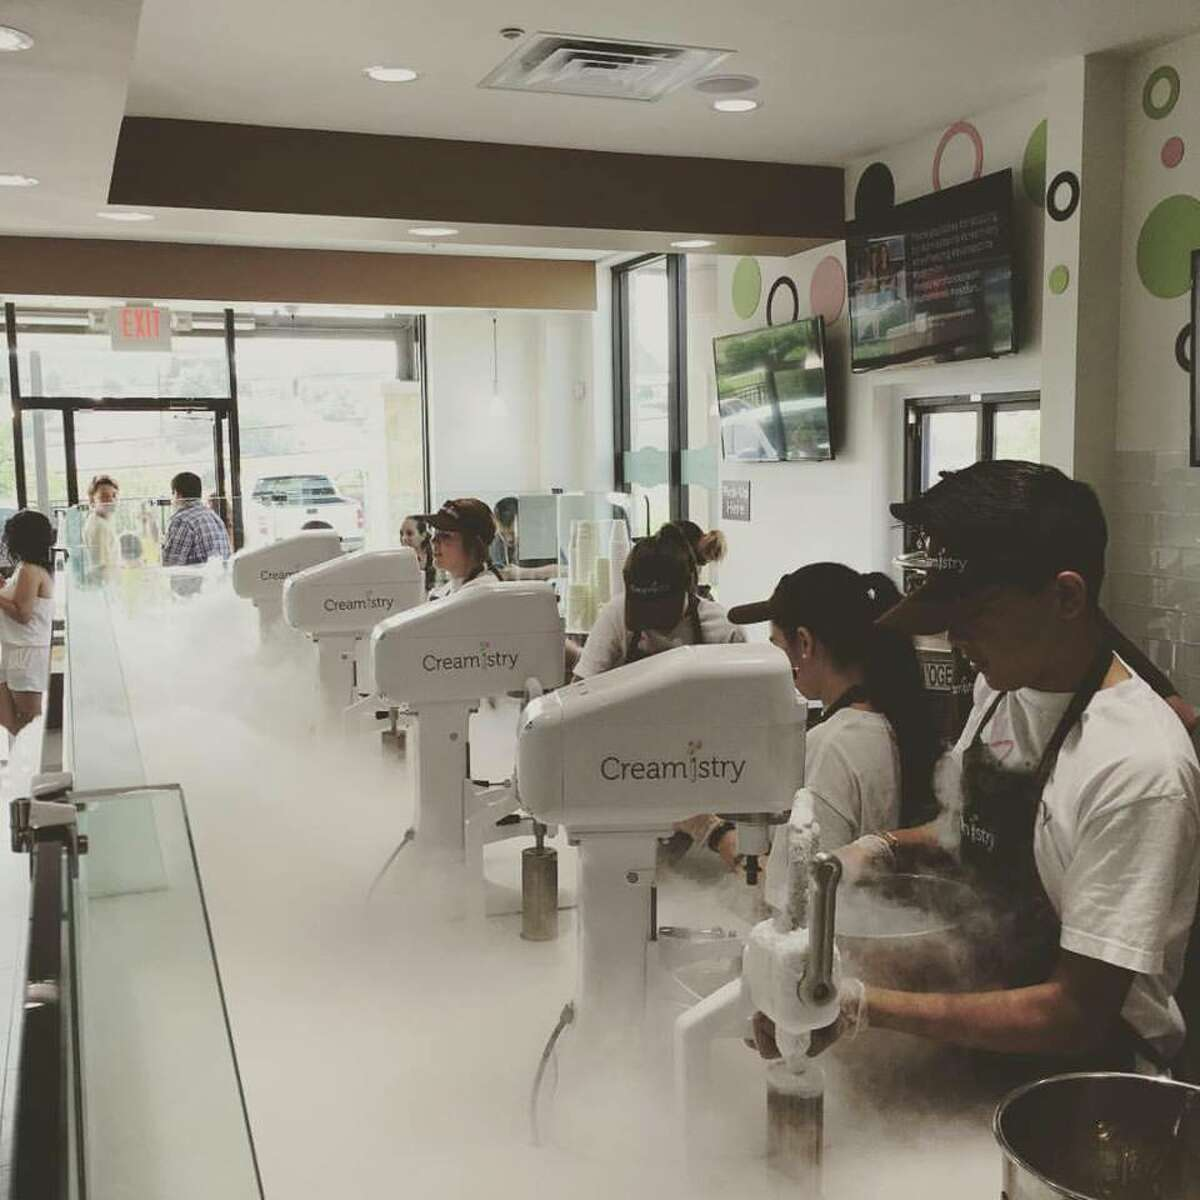 California-based Creamistry, an ice cream joint which uses liquid nitrogen, expanded into Texas making its first stop in San Antonio on June 18, 2016 at 21134 U.S. Highway 281 North.